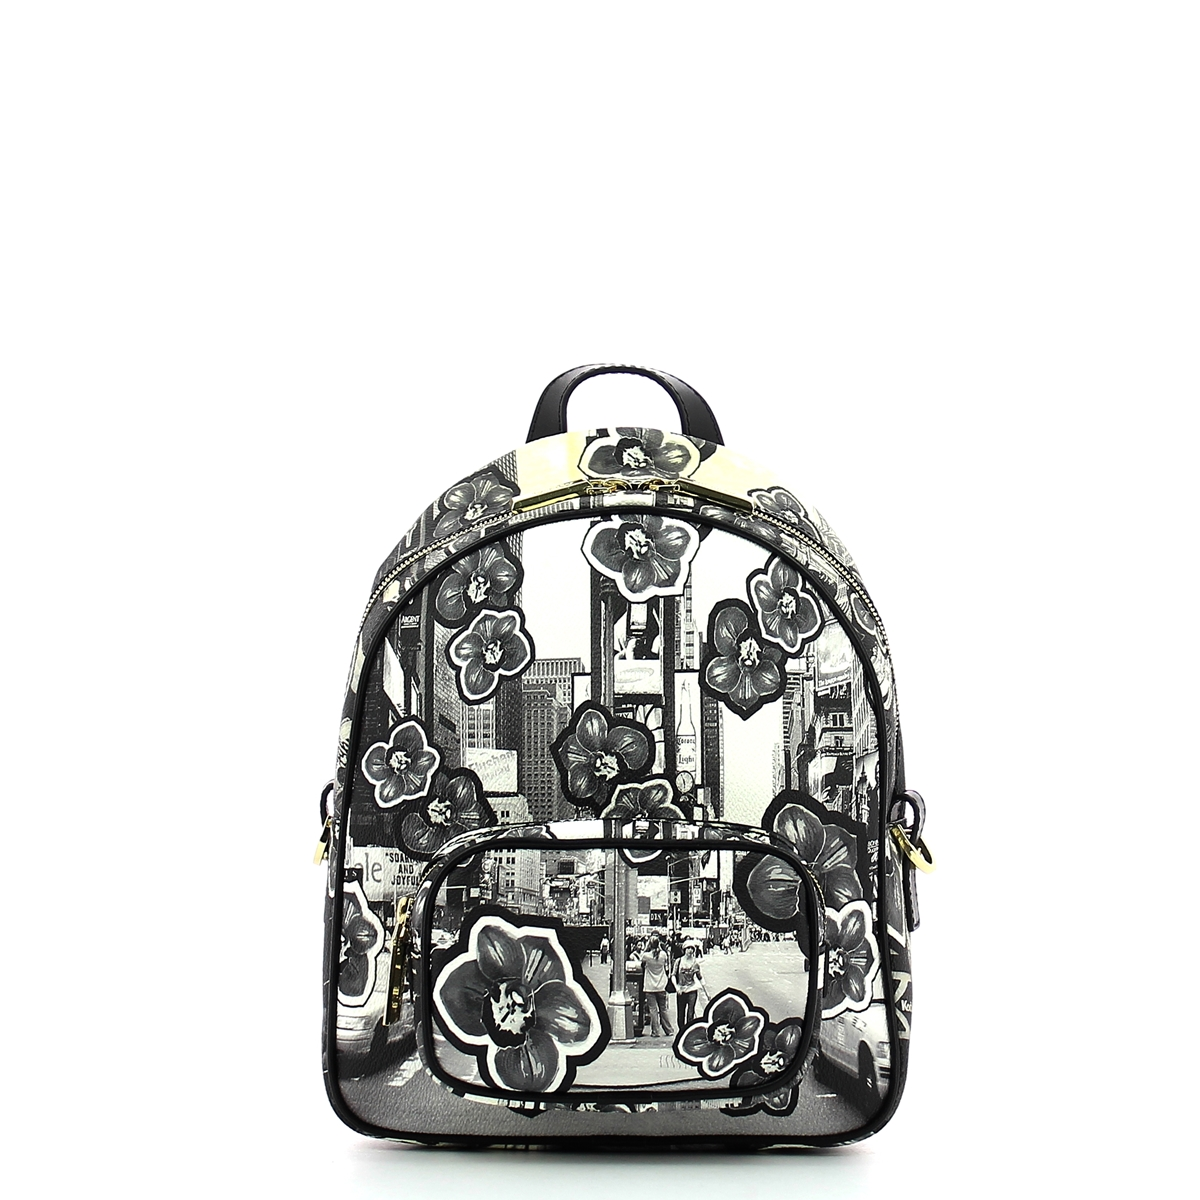 BACKPACK MED - SAFF STAMP NY NR-BIAN